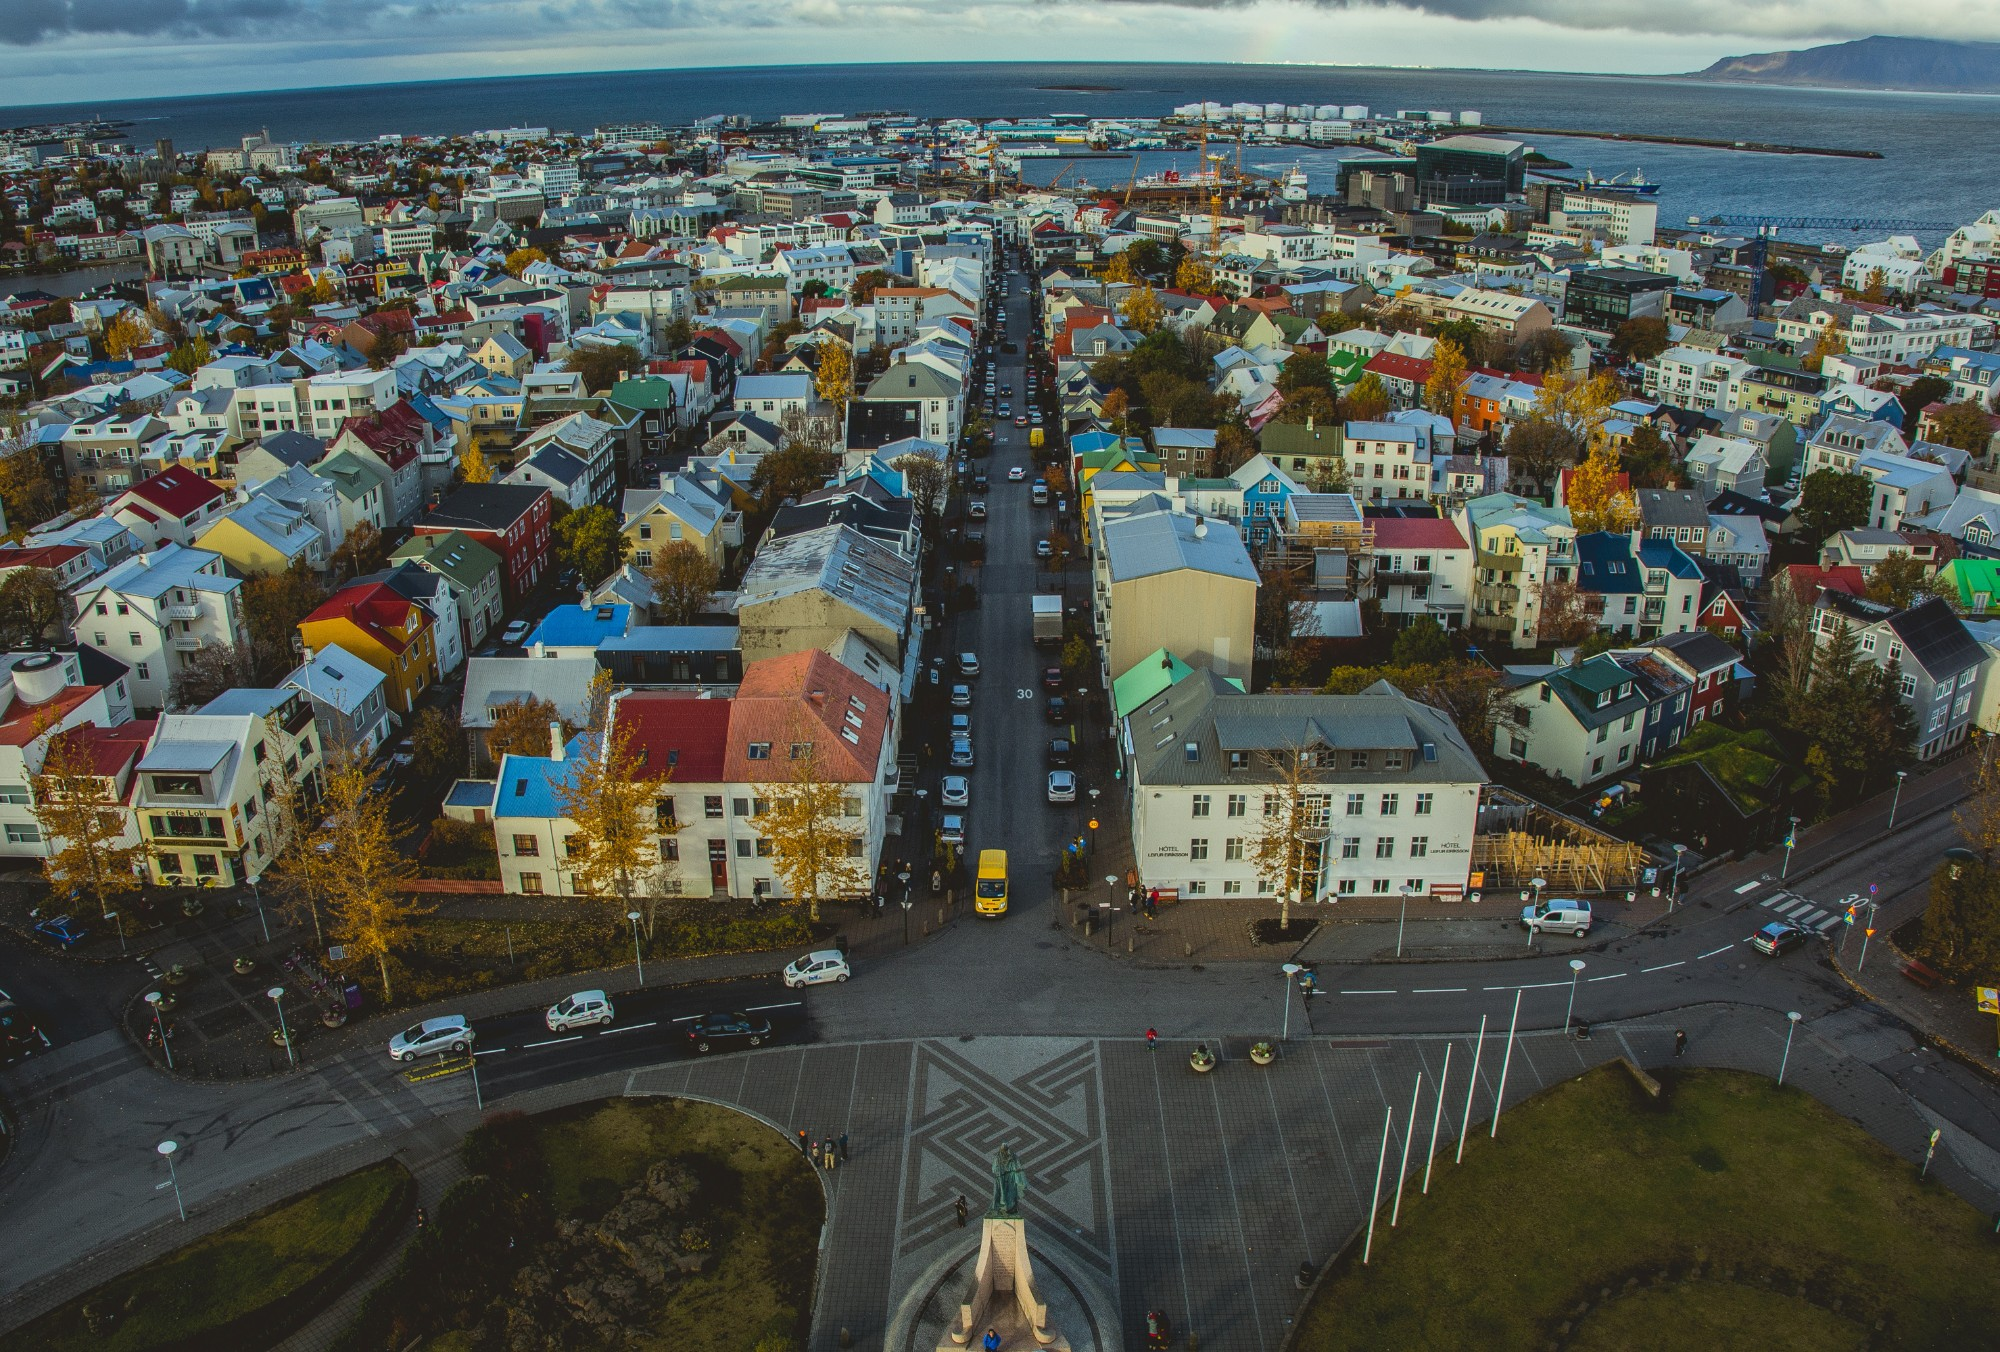 View of Reykjavík colourful rooftops